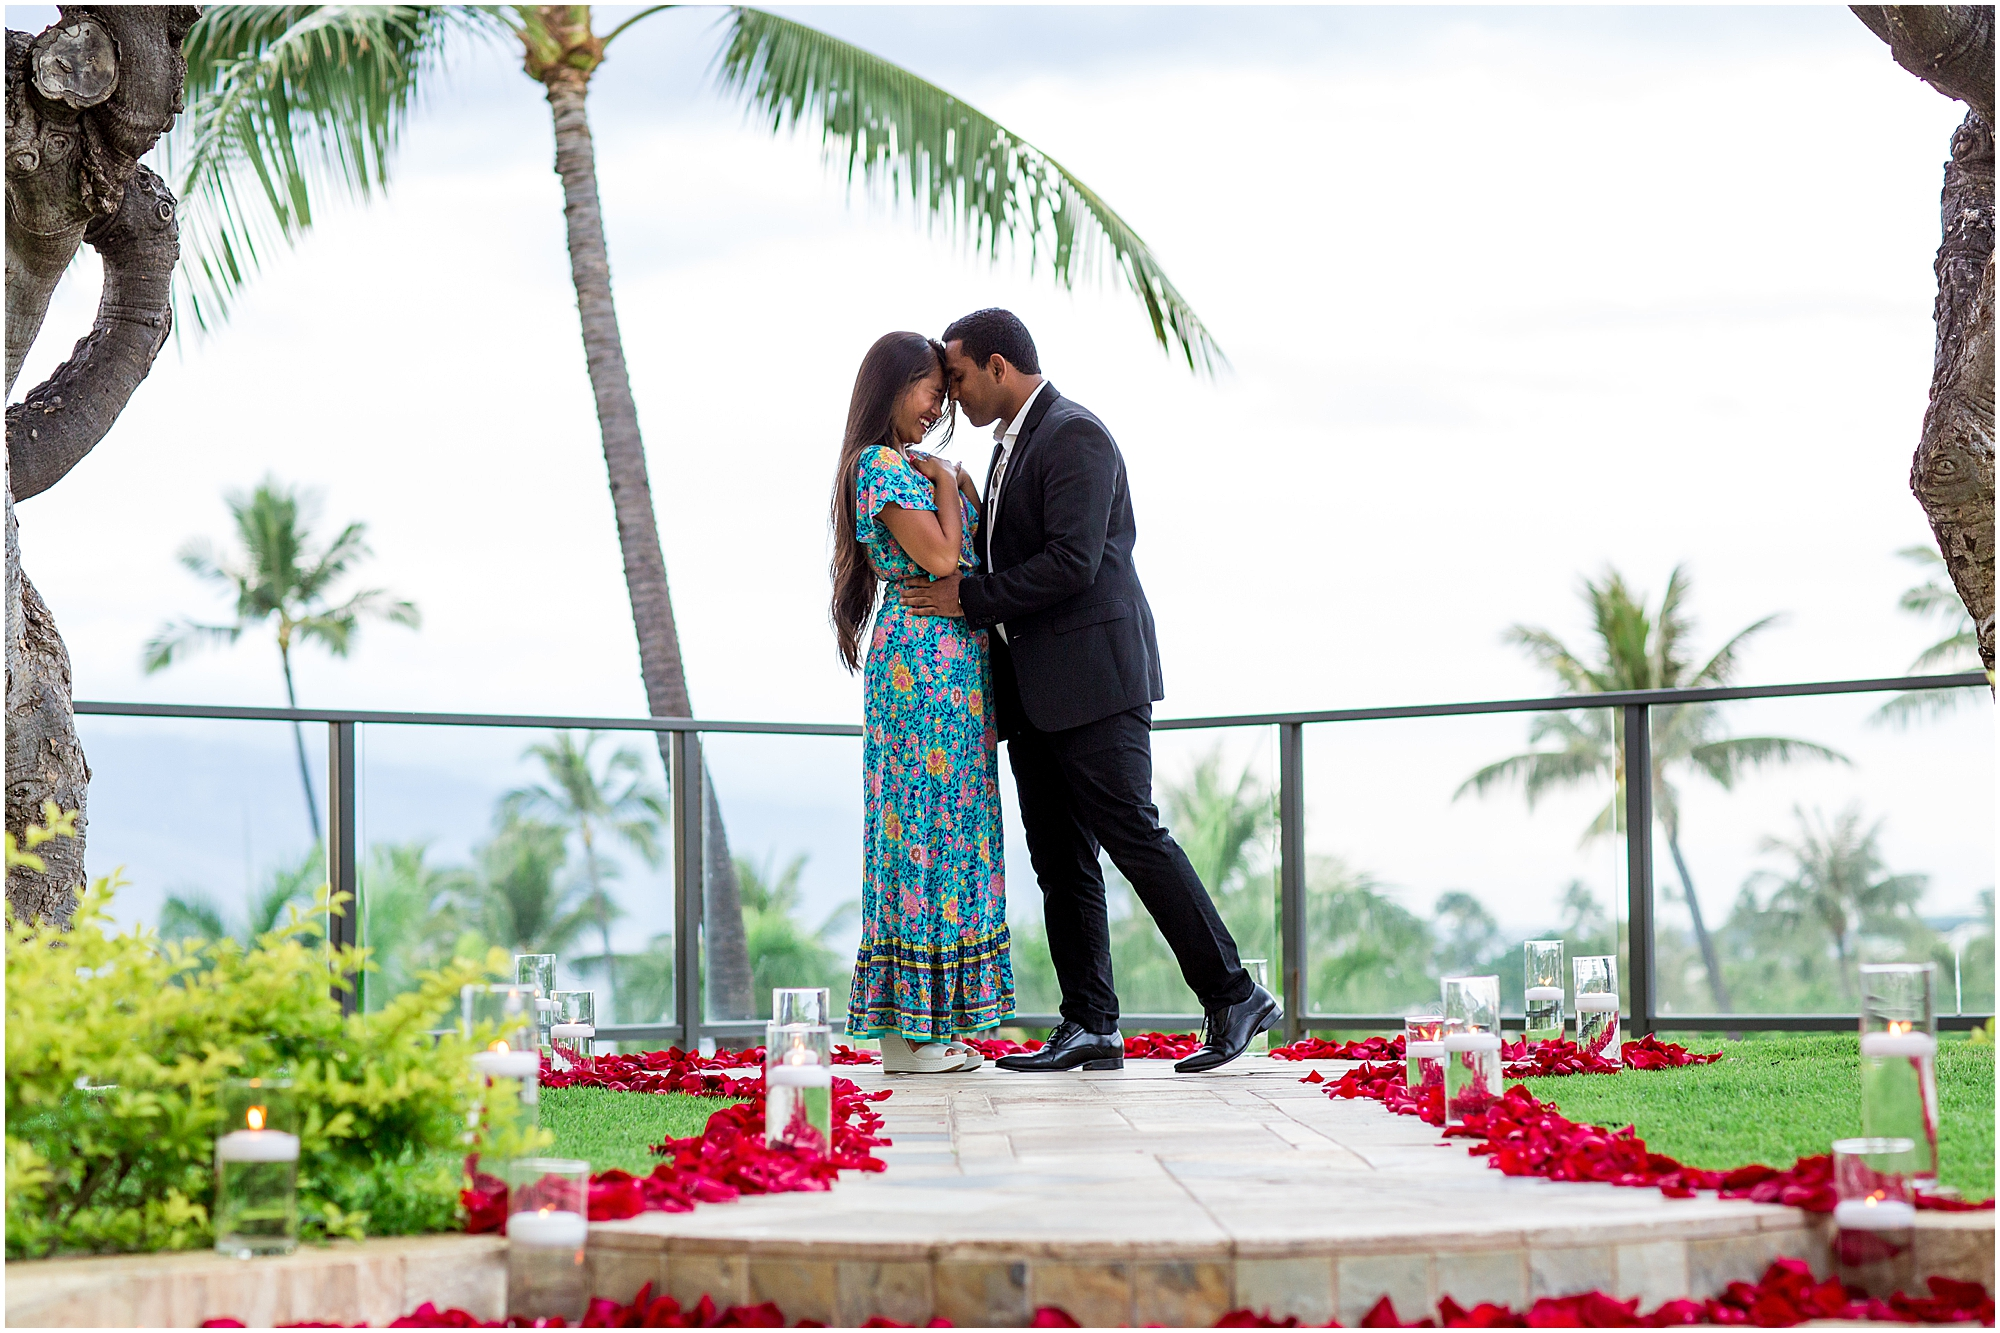 Embracing after elegant Maui proposal